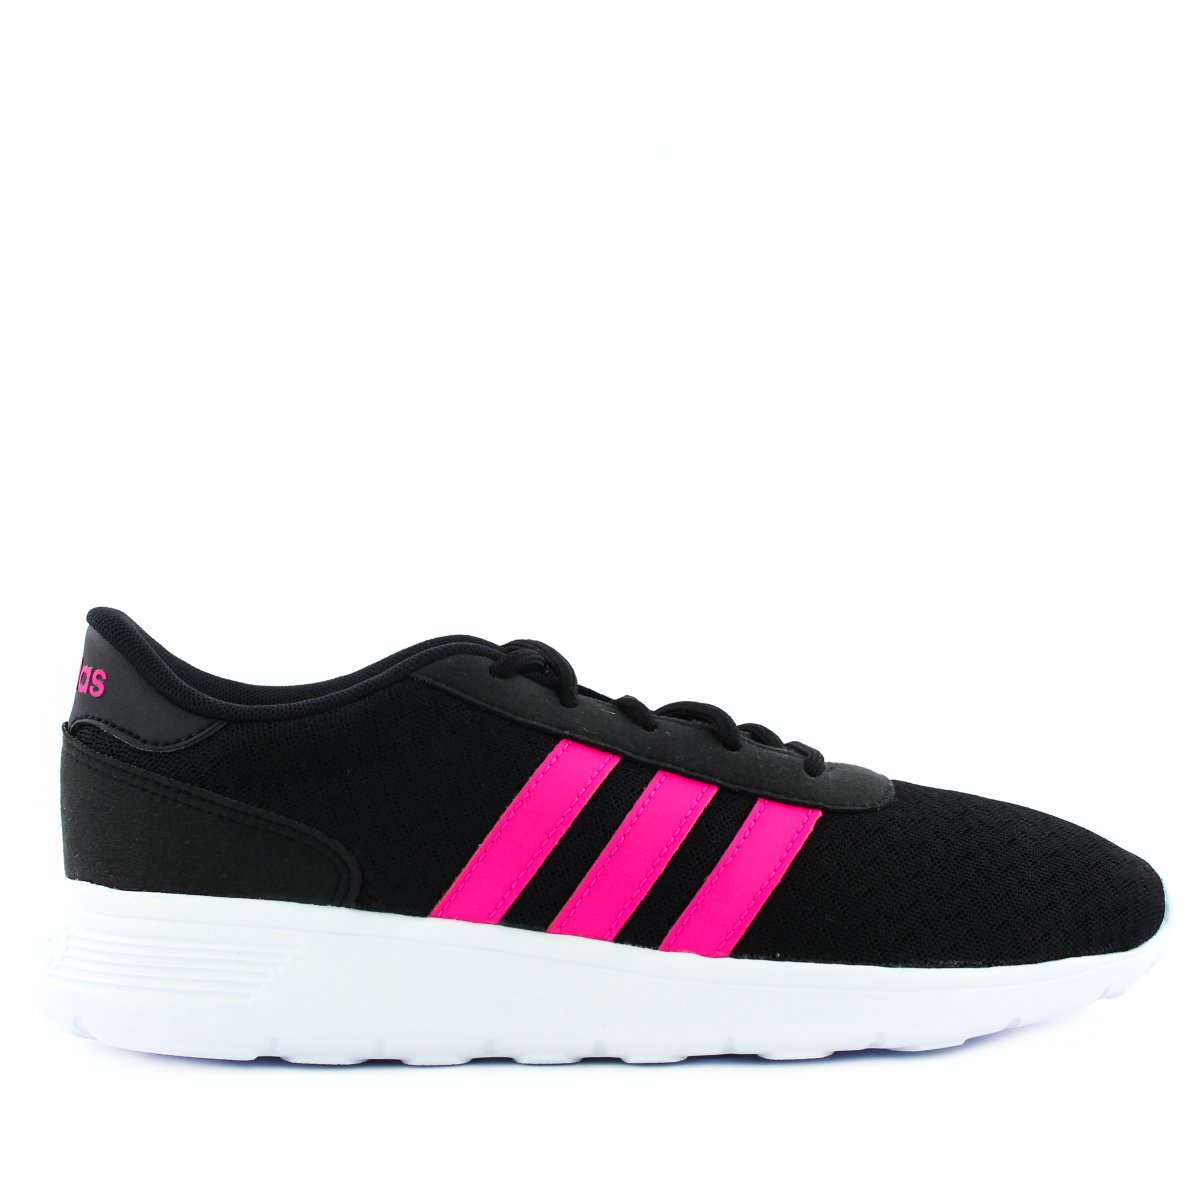 55c5241ae9e8a Tenis Adidas Lite Racer w Bb9835 | Preto/pink | Coutope